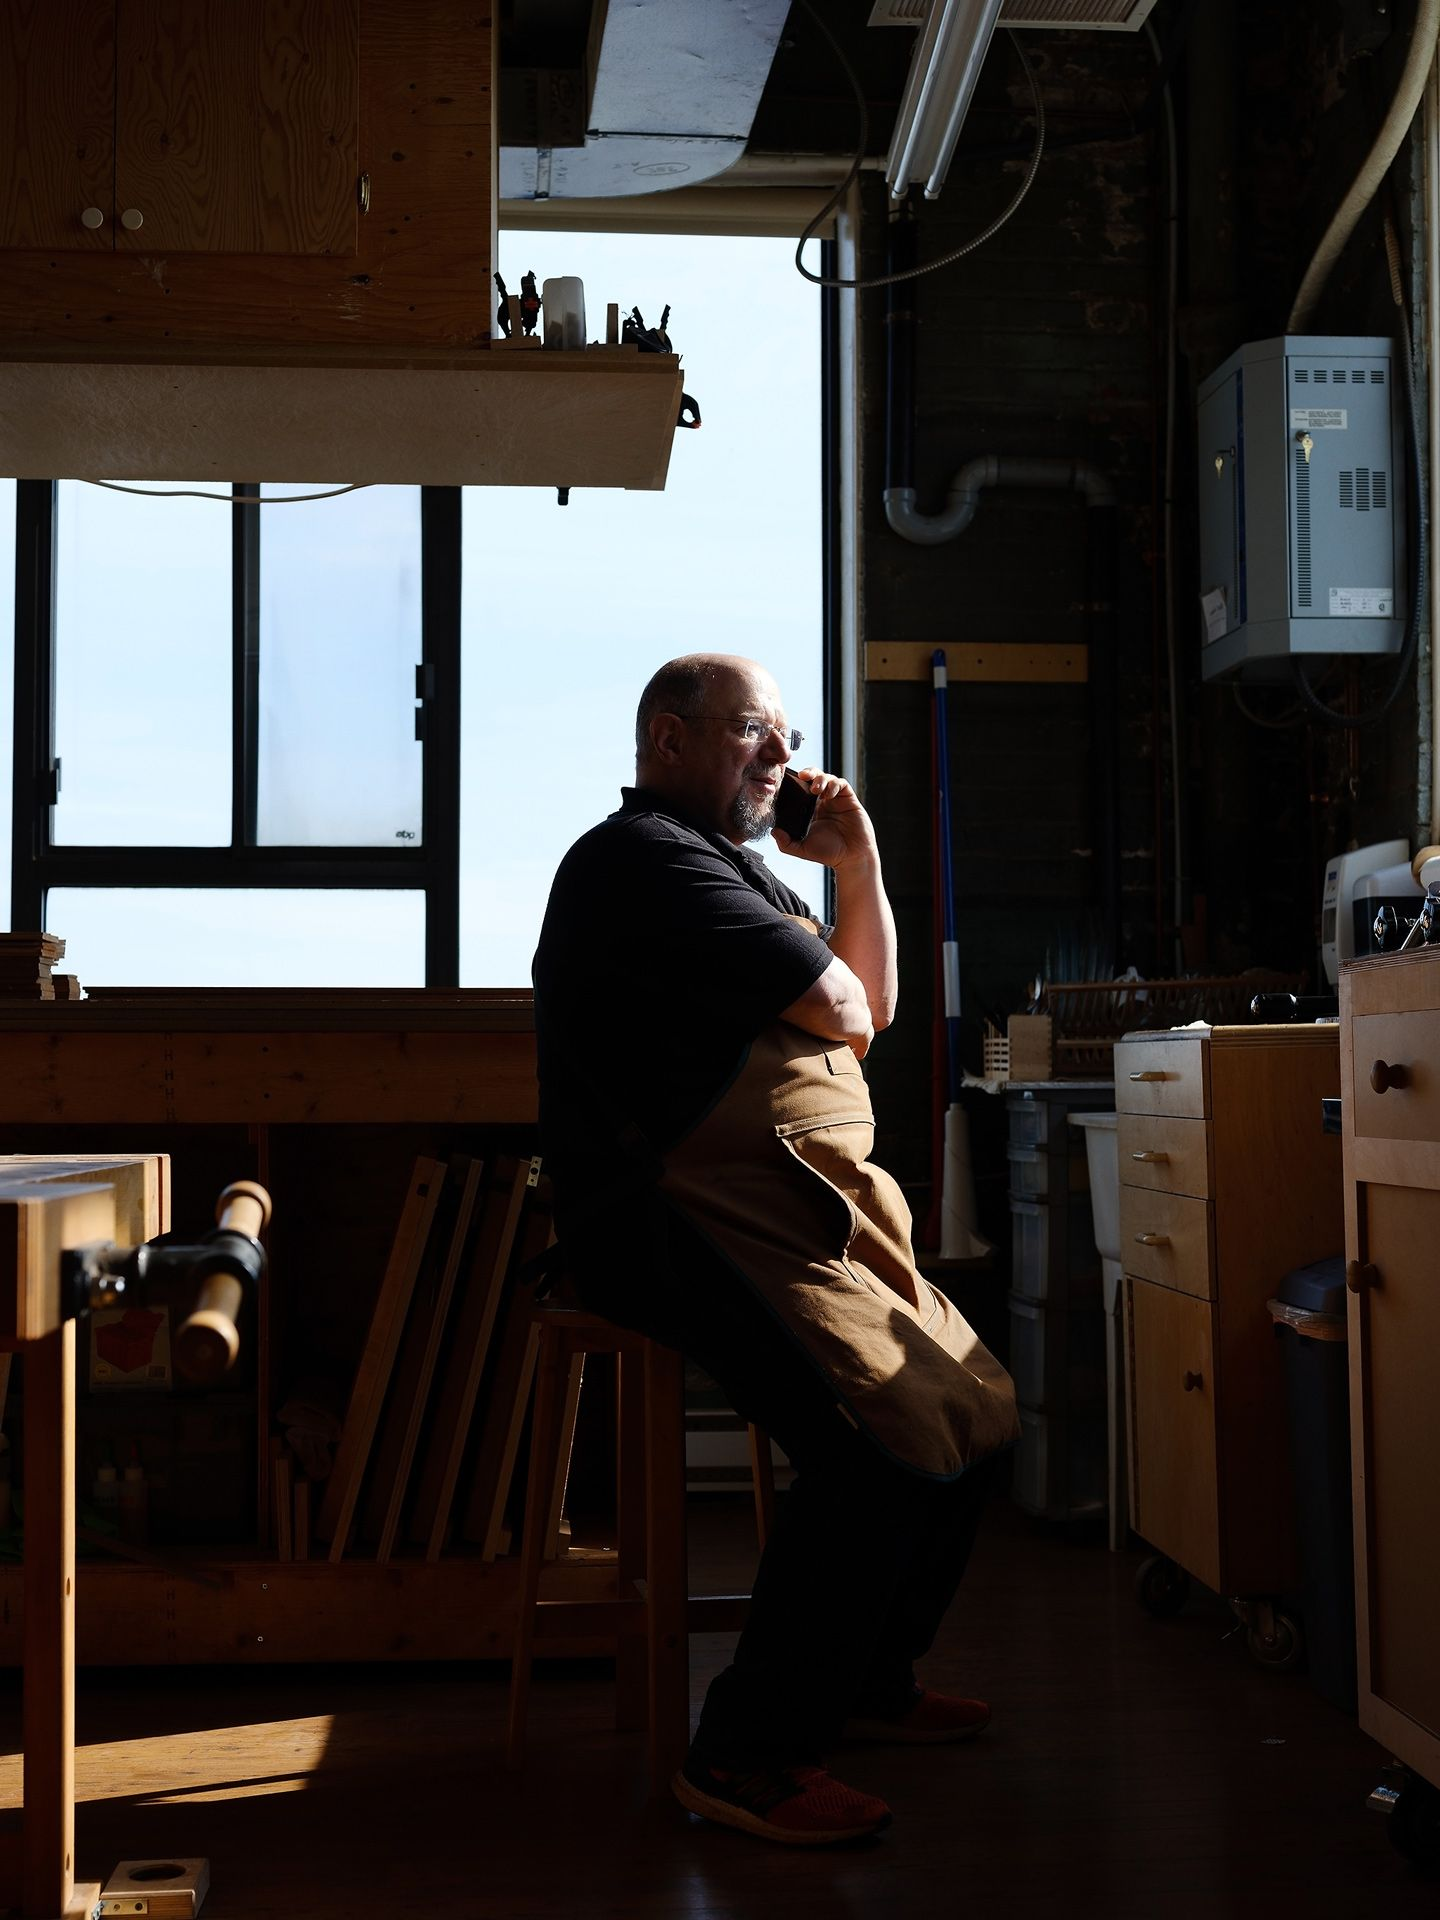 guitar maker sitting on stool in the sun on the phone by Guillaume Simoneau for Mercedes Benz Magazine